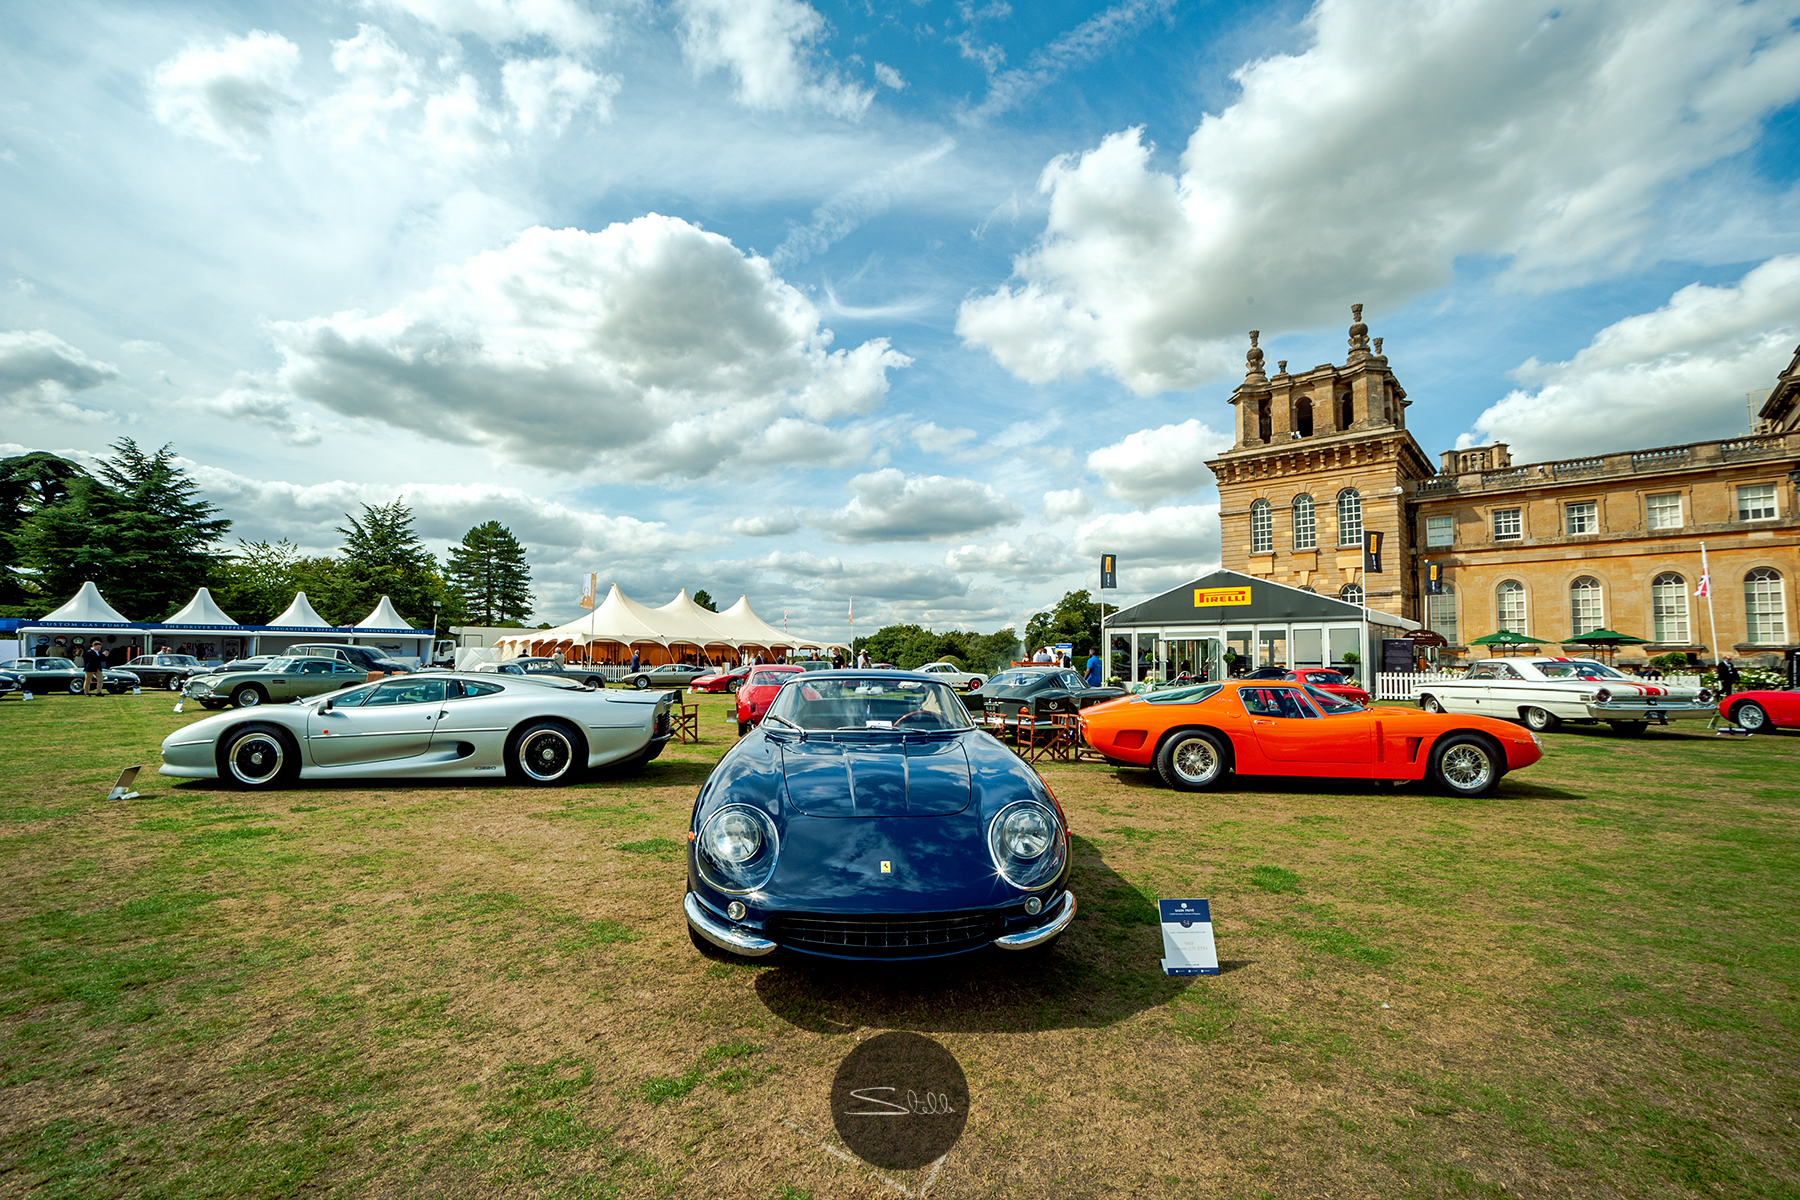 Stella Scordellis Salon Prive 2018 52 Watermarked.jpg